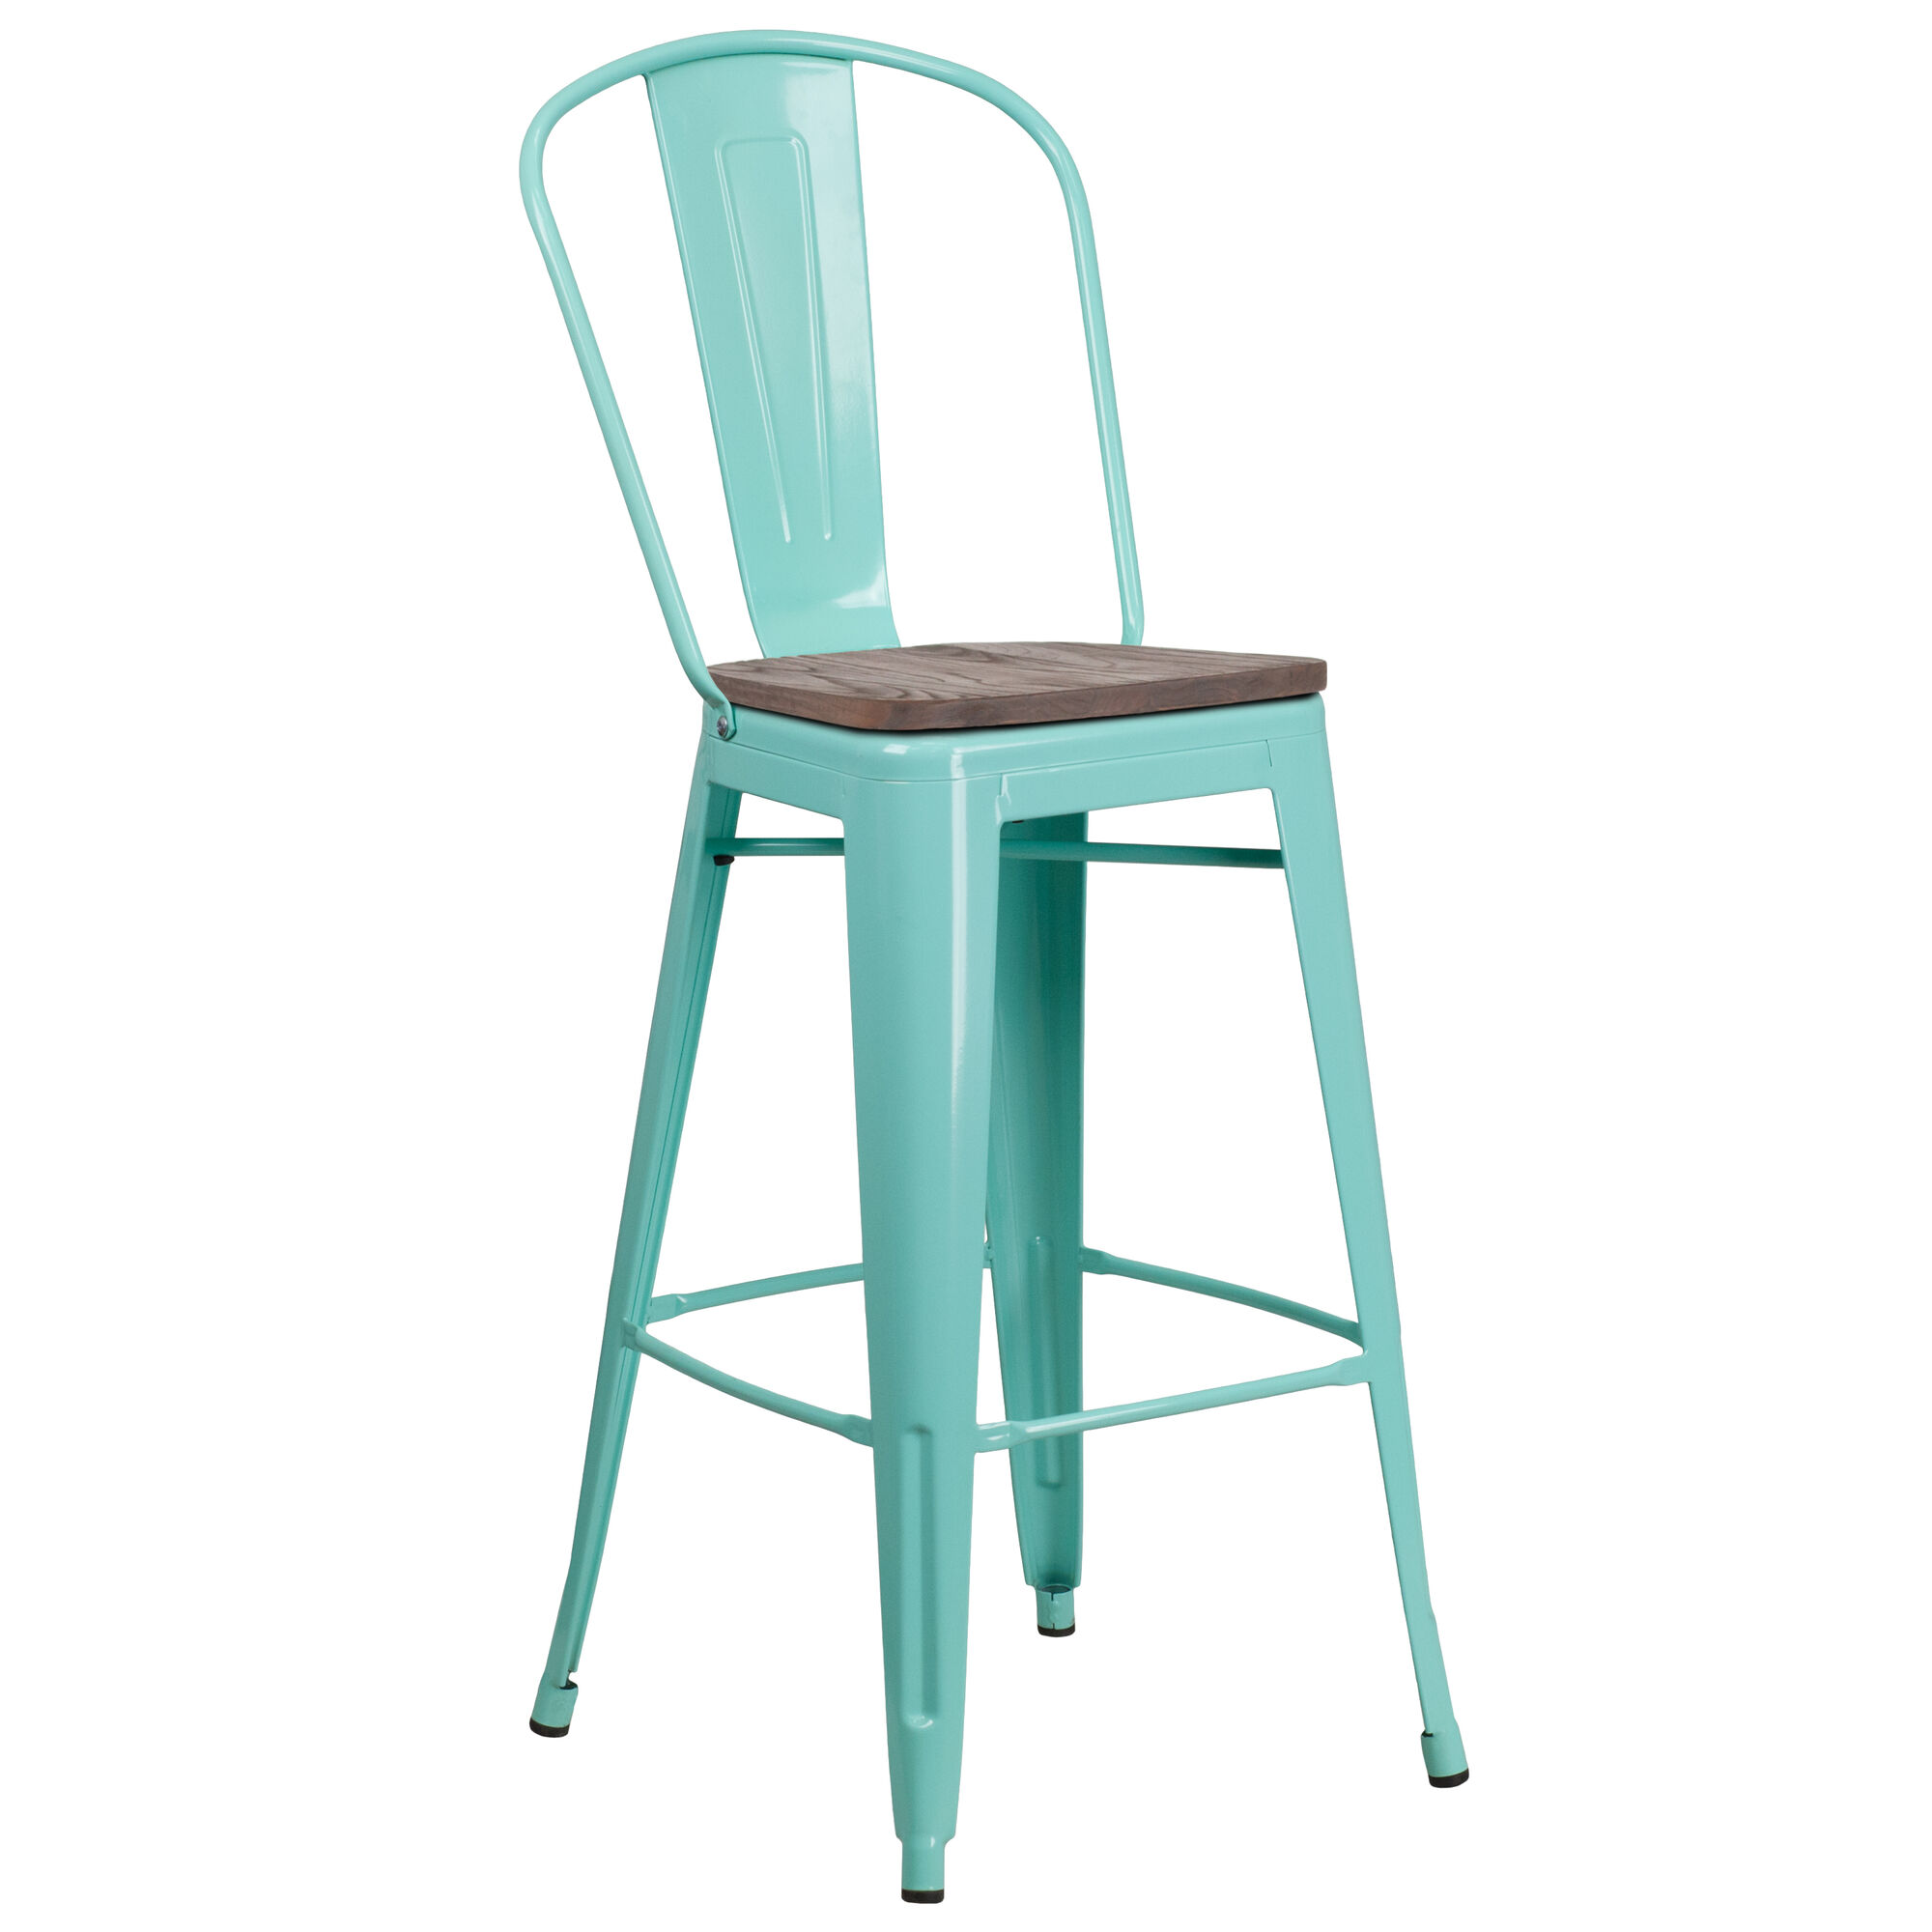 Astounding 30 High Mint Green Metal Barstool With Back And Wood Seat Squirreltailoven Fun Painted Chair Ideas Images Squirreltailovenorg